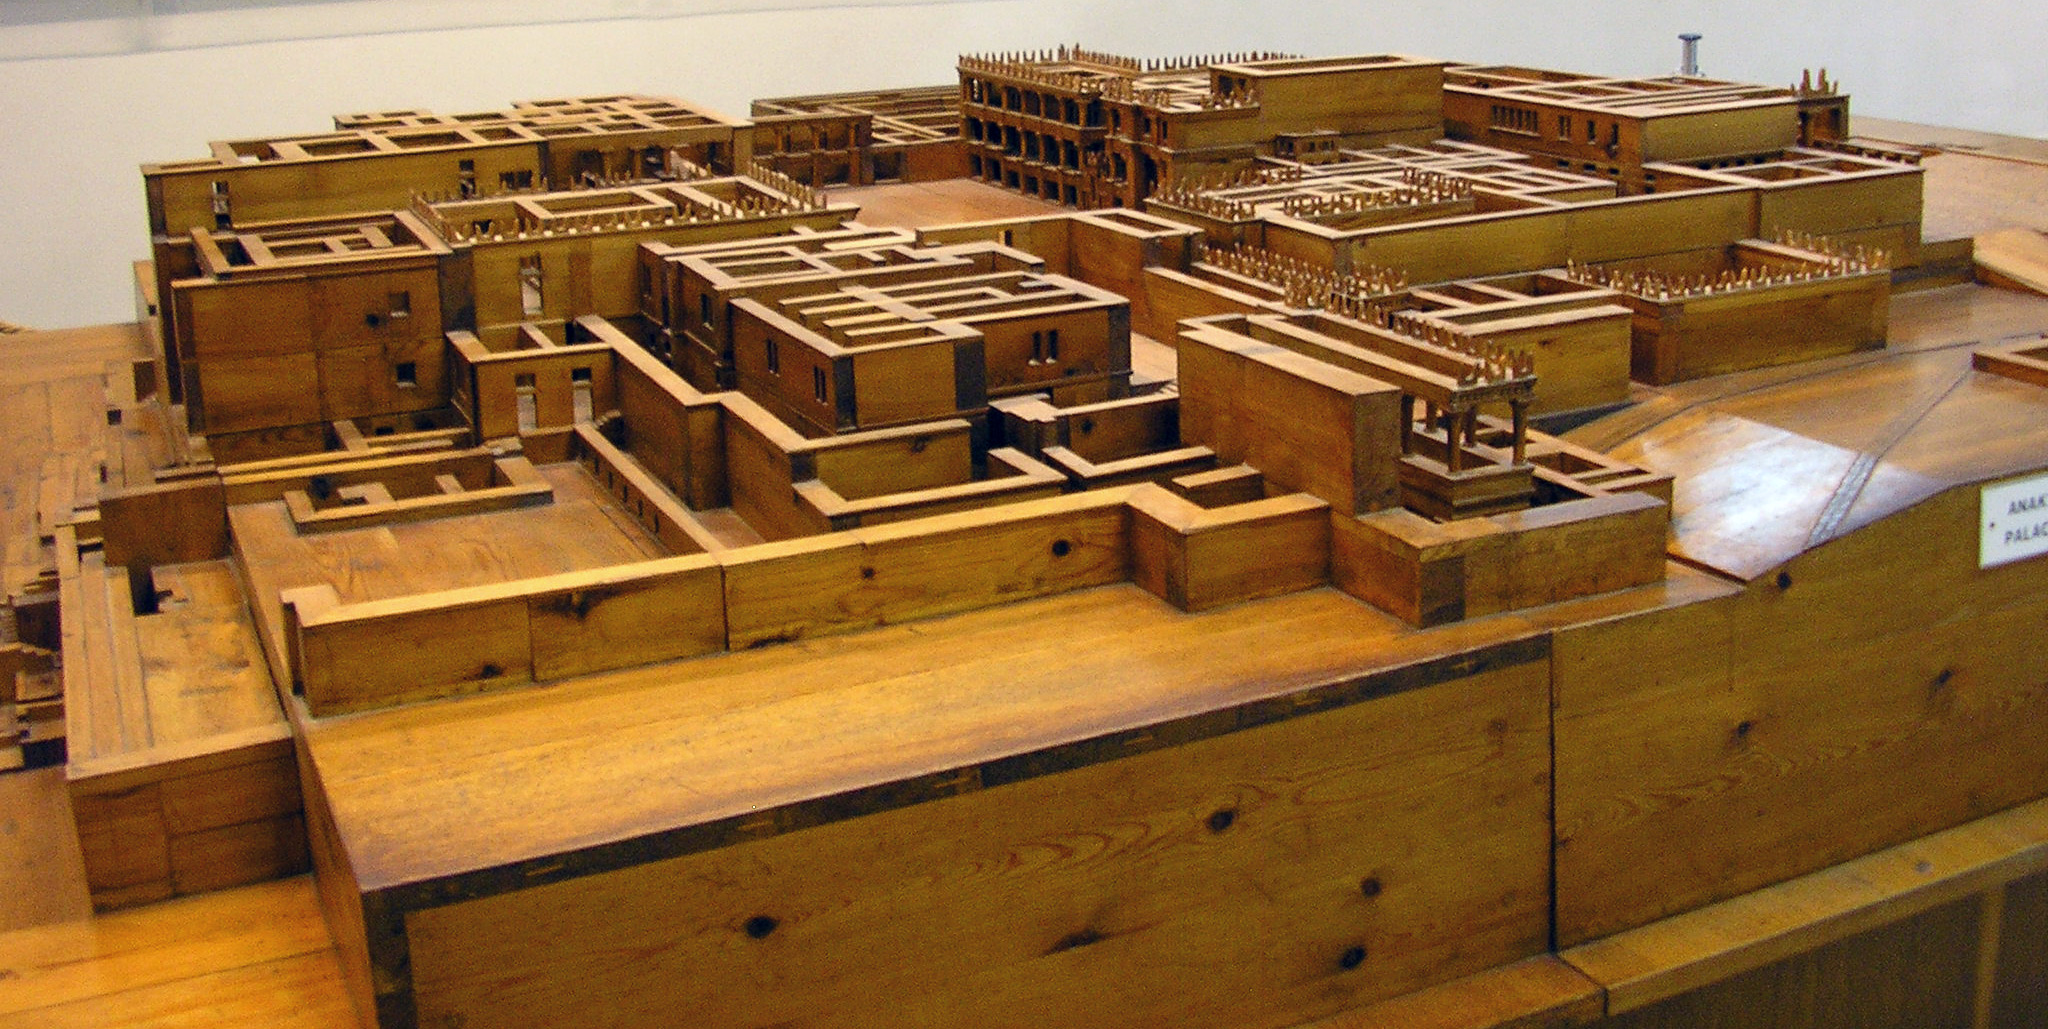 Model of Knossos (source)